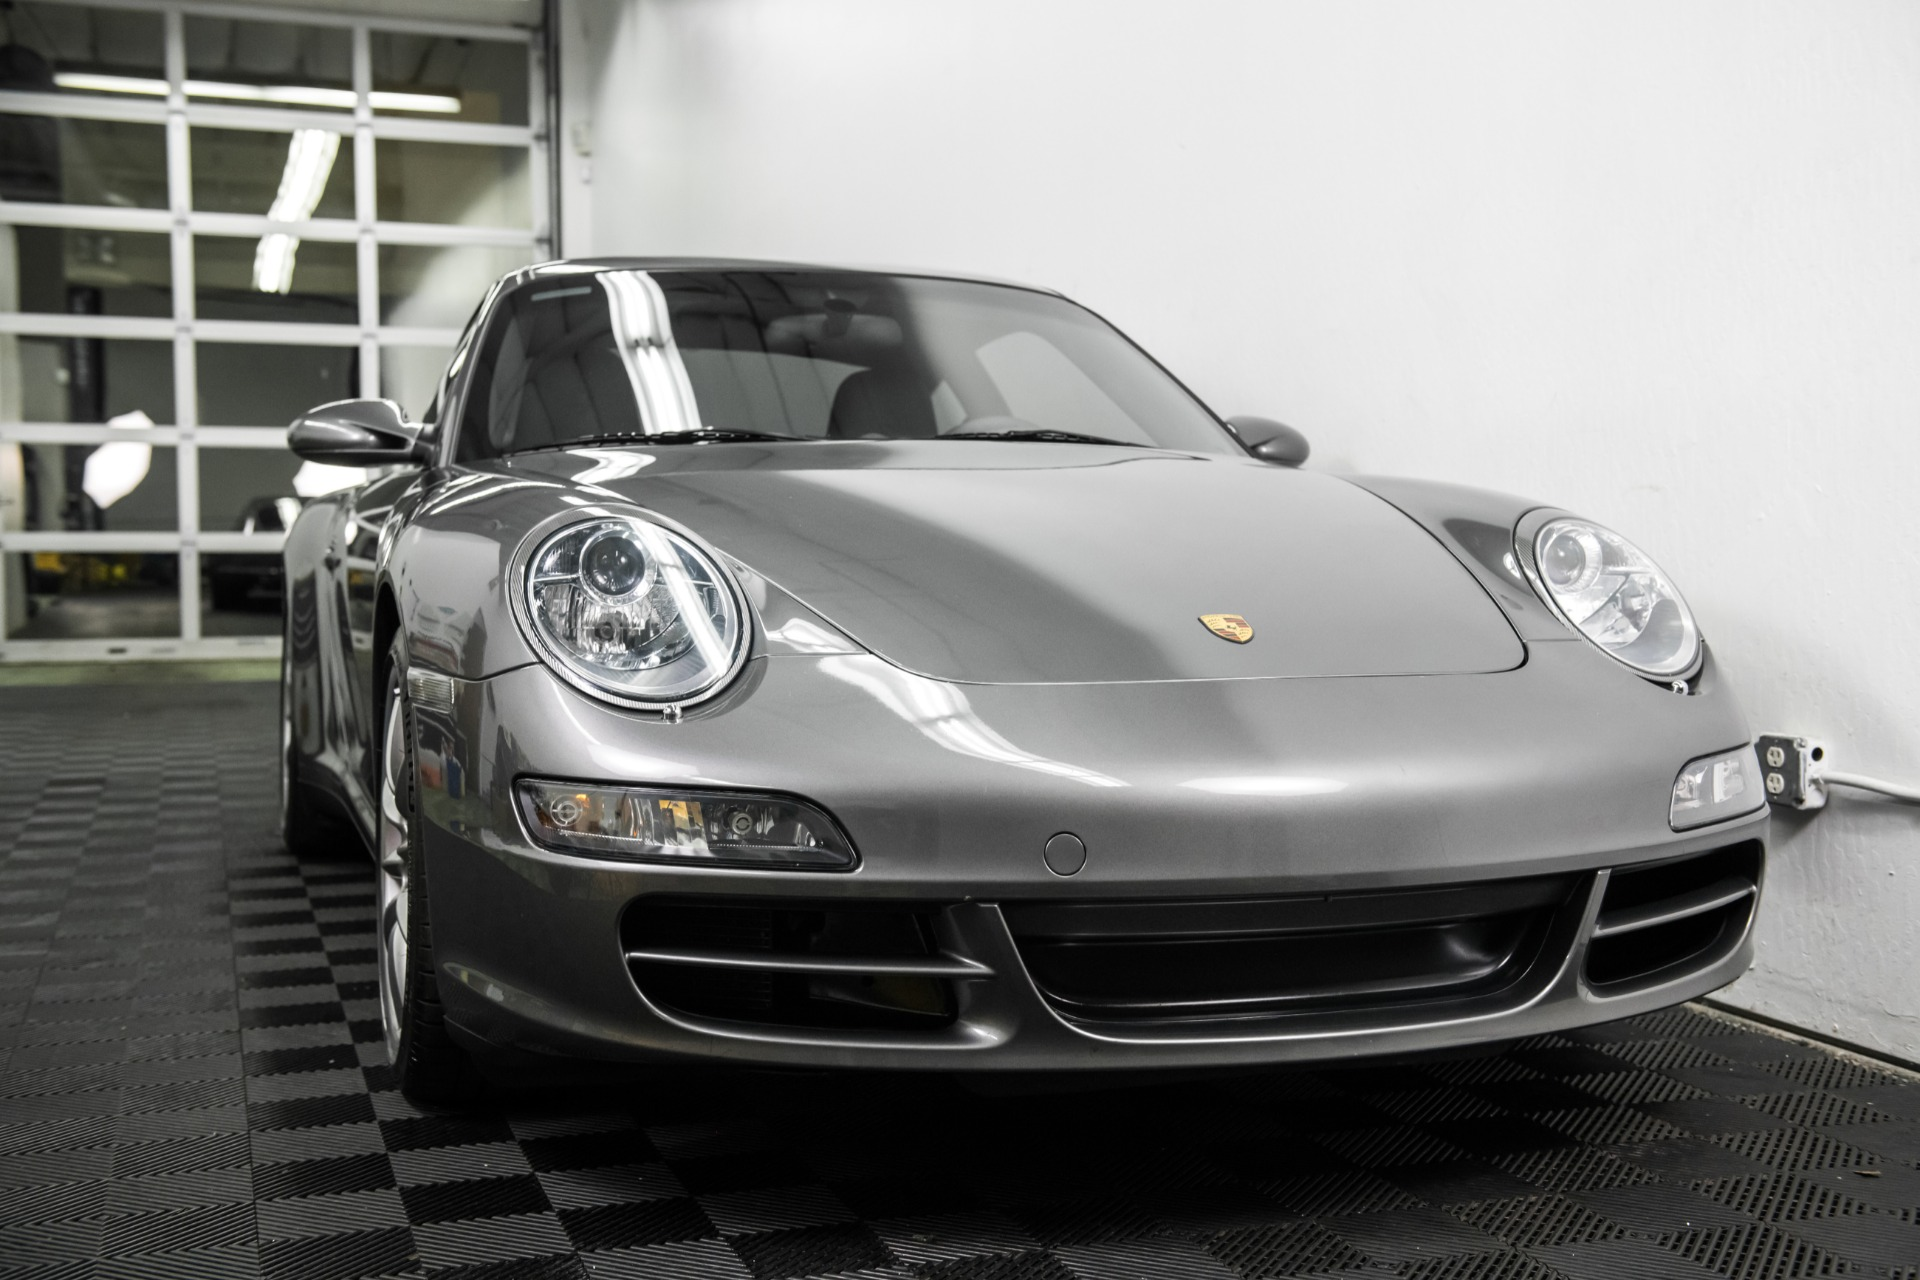 Used 2008 Porsche 911 Carrera 4S Used 2008 Porsche 911 Carrera 4S for sale $48,999 at Response Motors in Mountain View CA 2